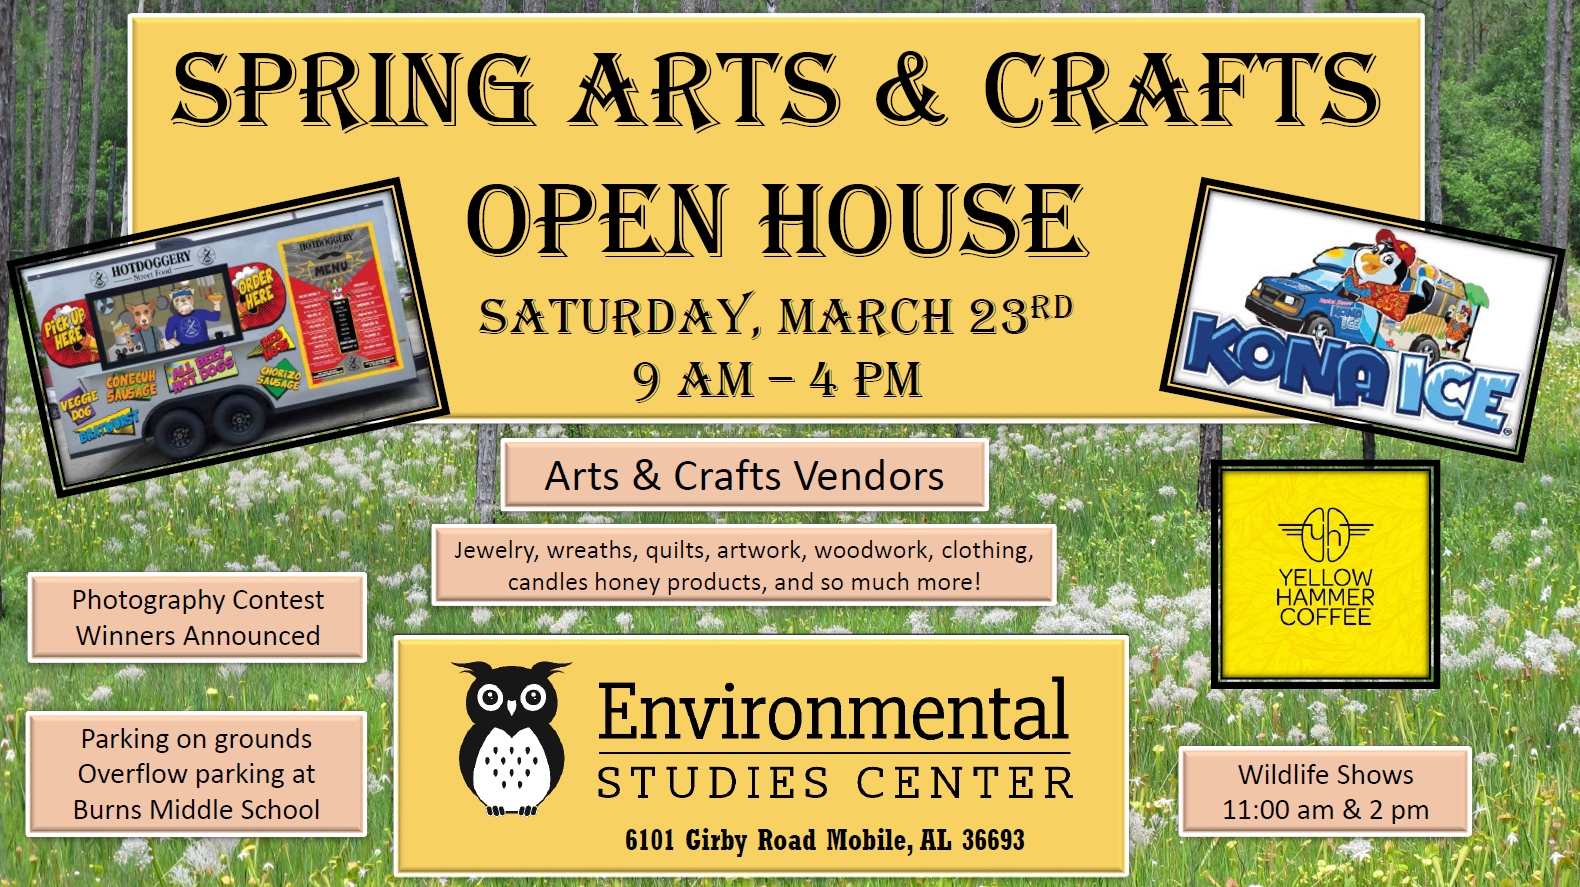 Arts and Crafts Open House Flyer